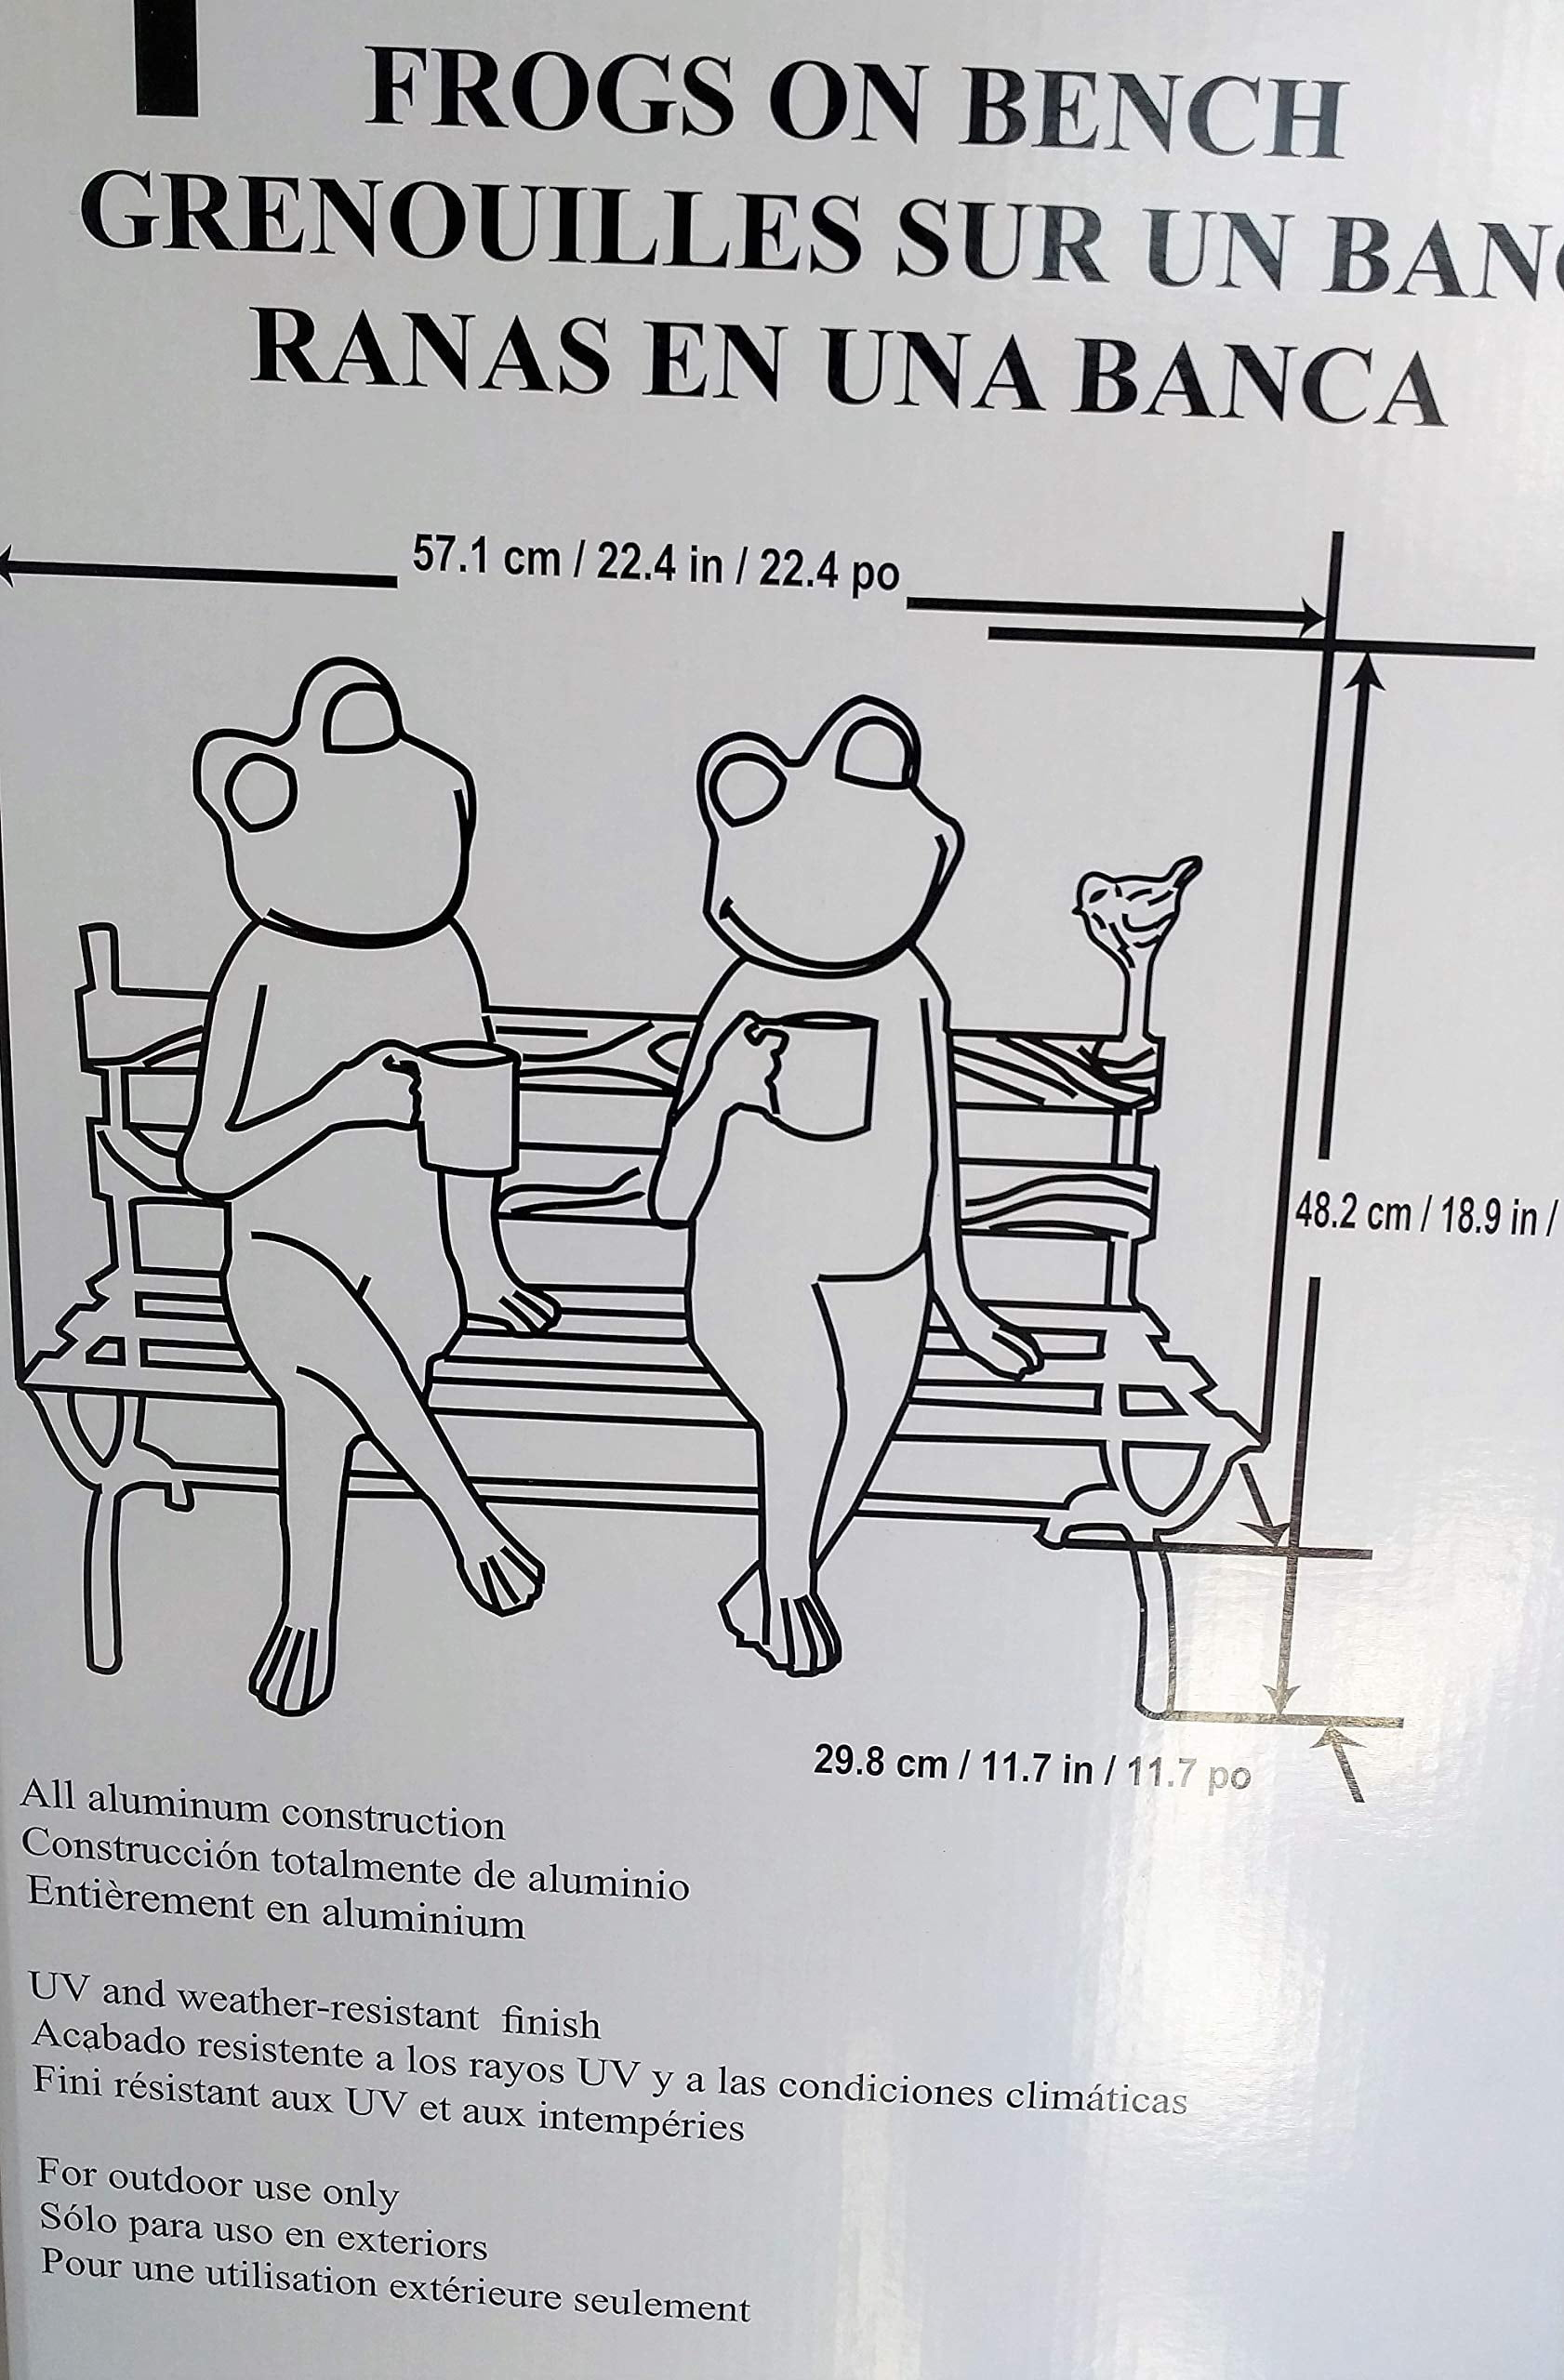 Miraculous Frogs On A Bench Drinking With A Bird Outdoor Decor Extra Large 22 Long X 18 9 Tall Ocoug Best Dining Table And Chair Ideas Images Ocougorg